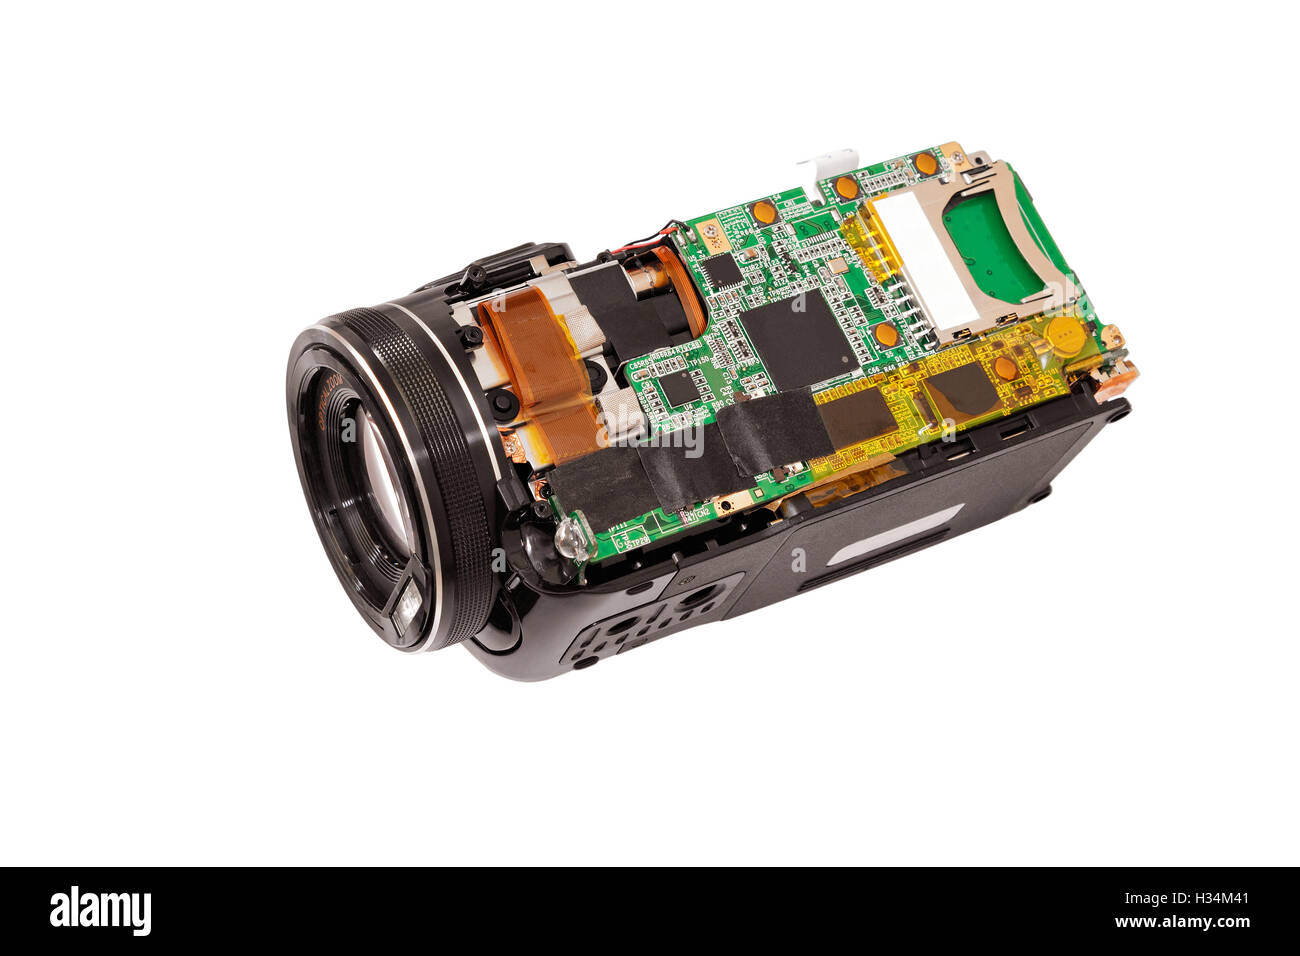 Disassembled compact camcorder. Close-up. Isolated on white background. - Stock Image